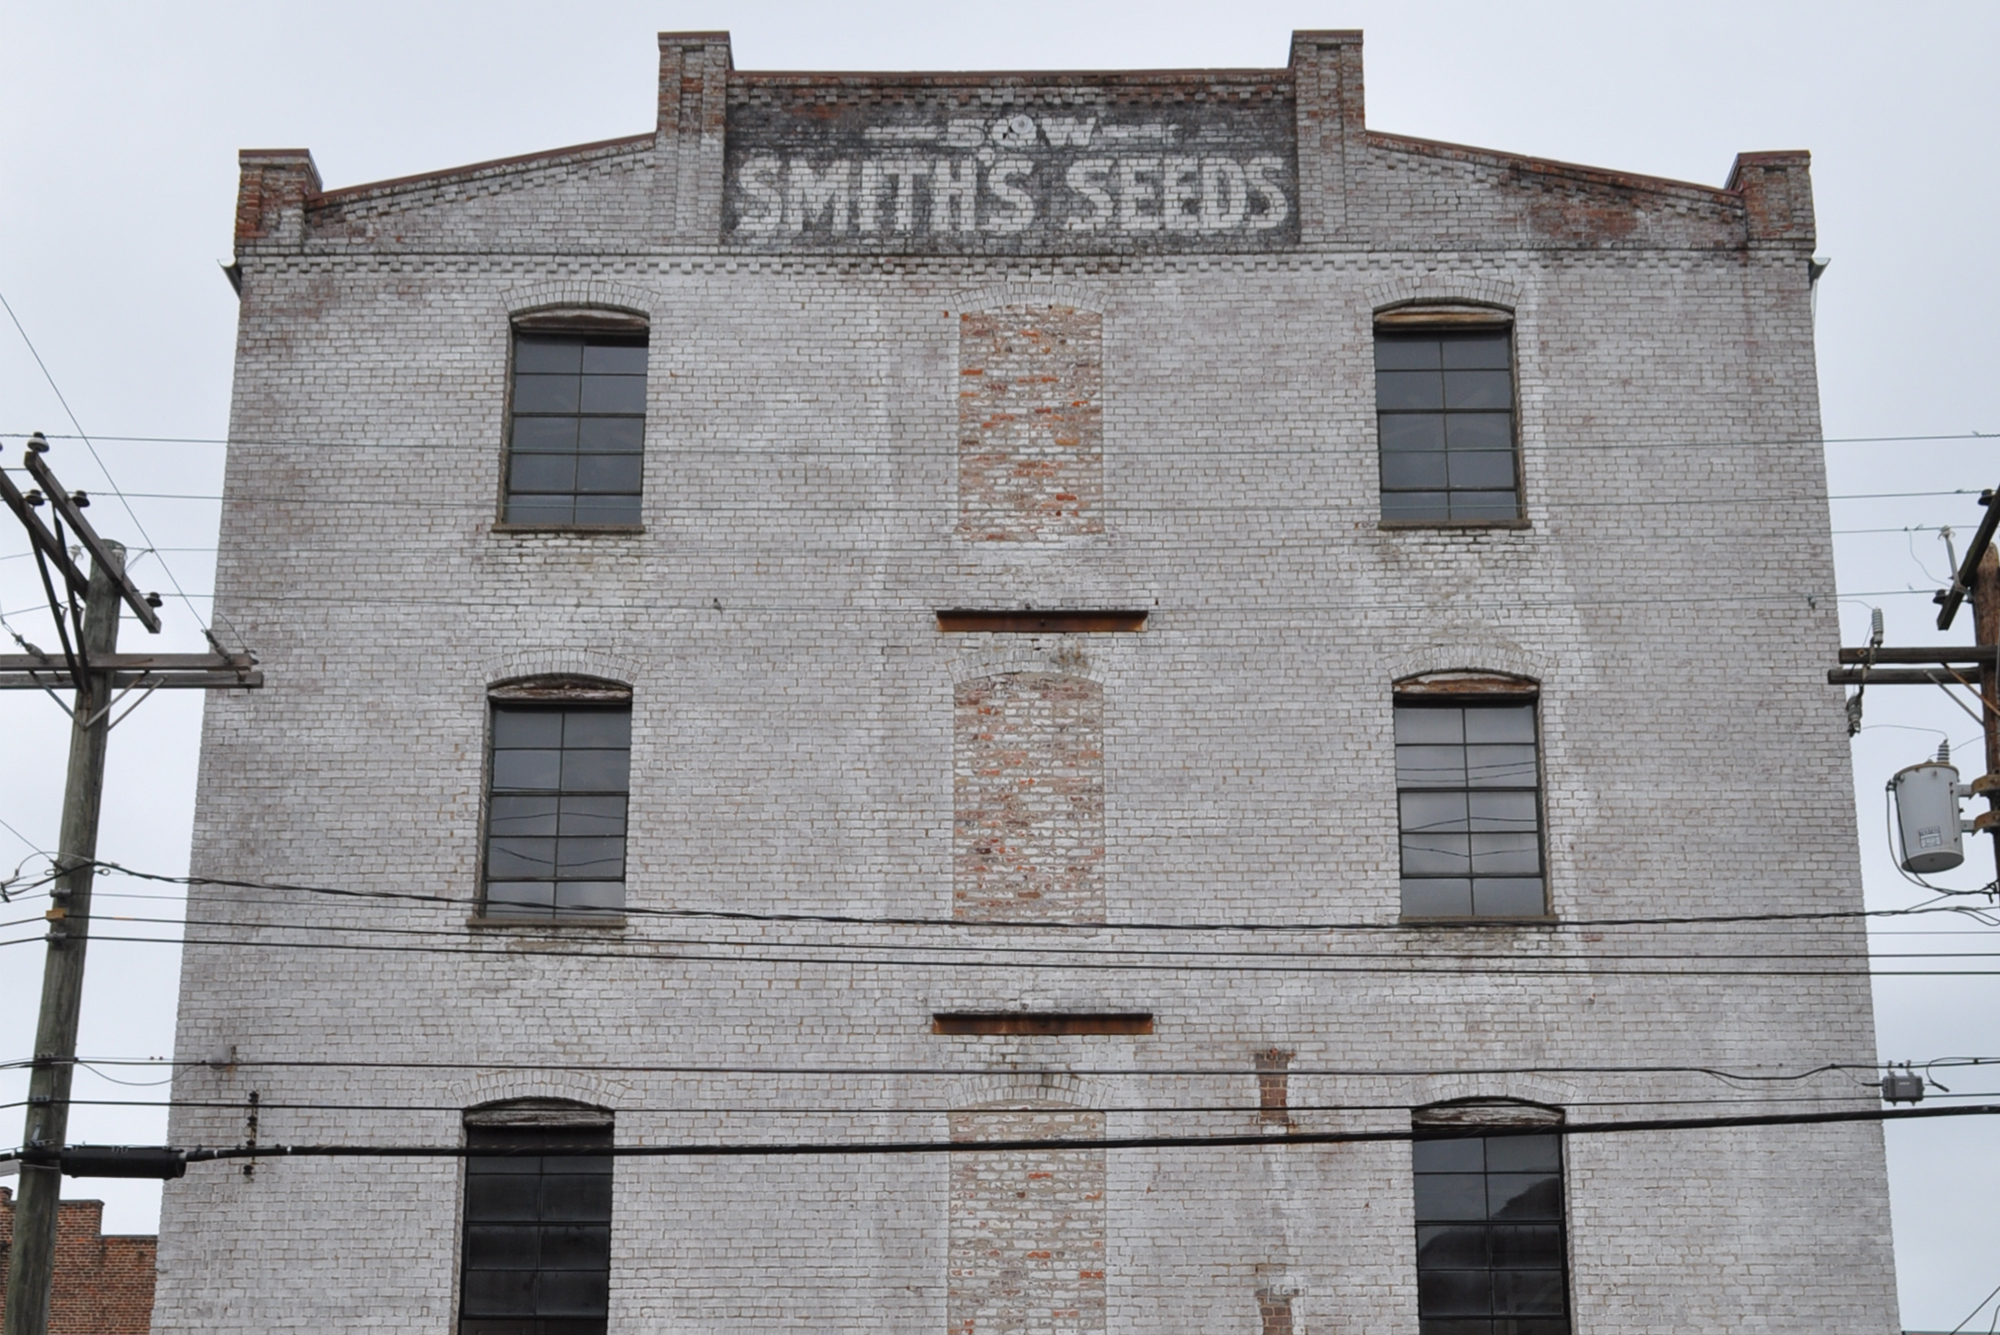 Smith Seeds